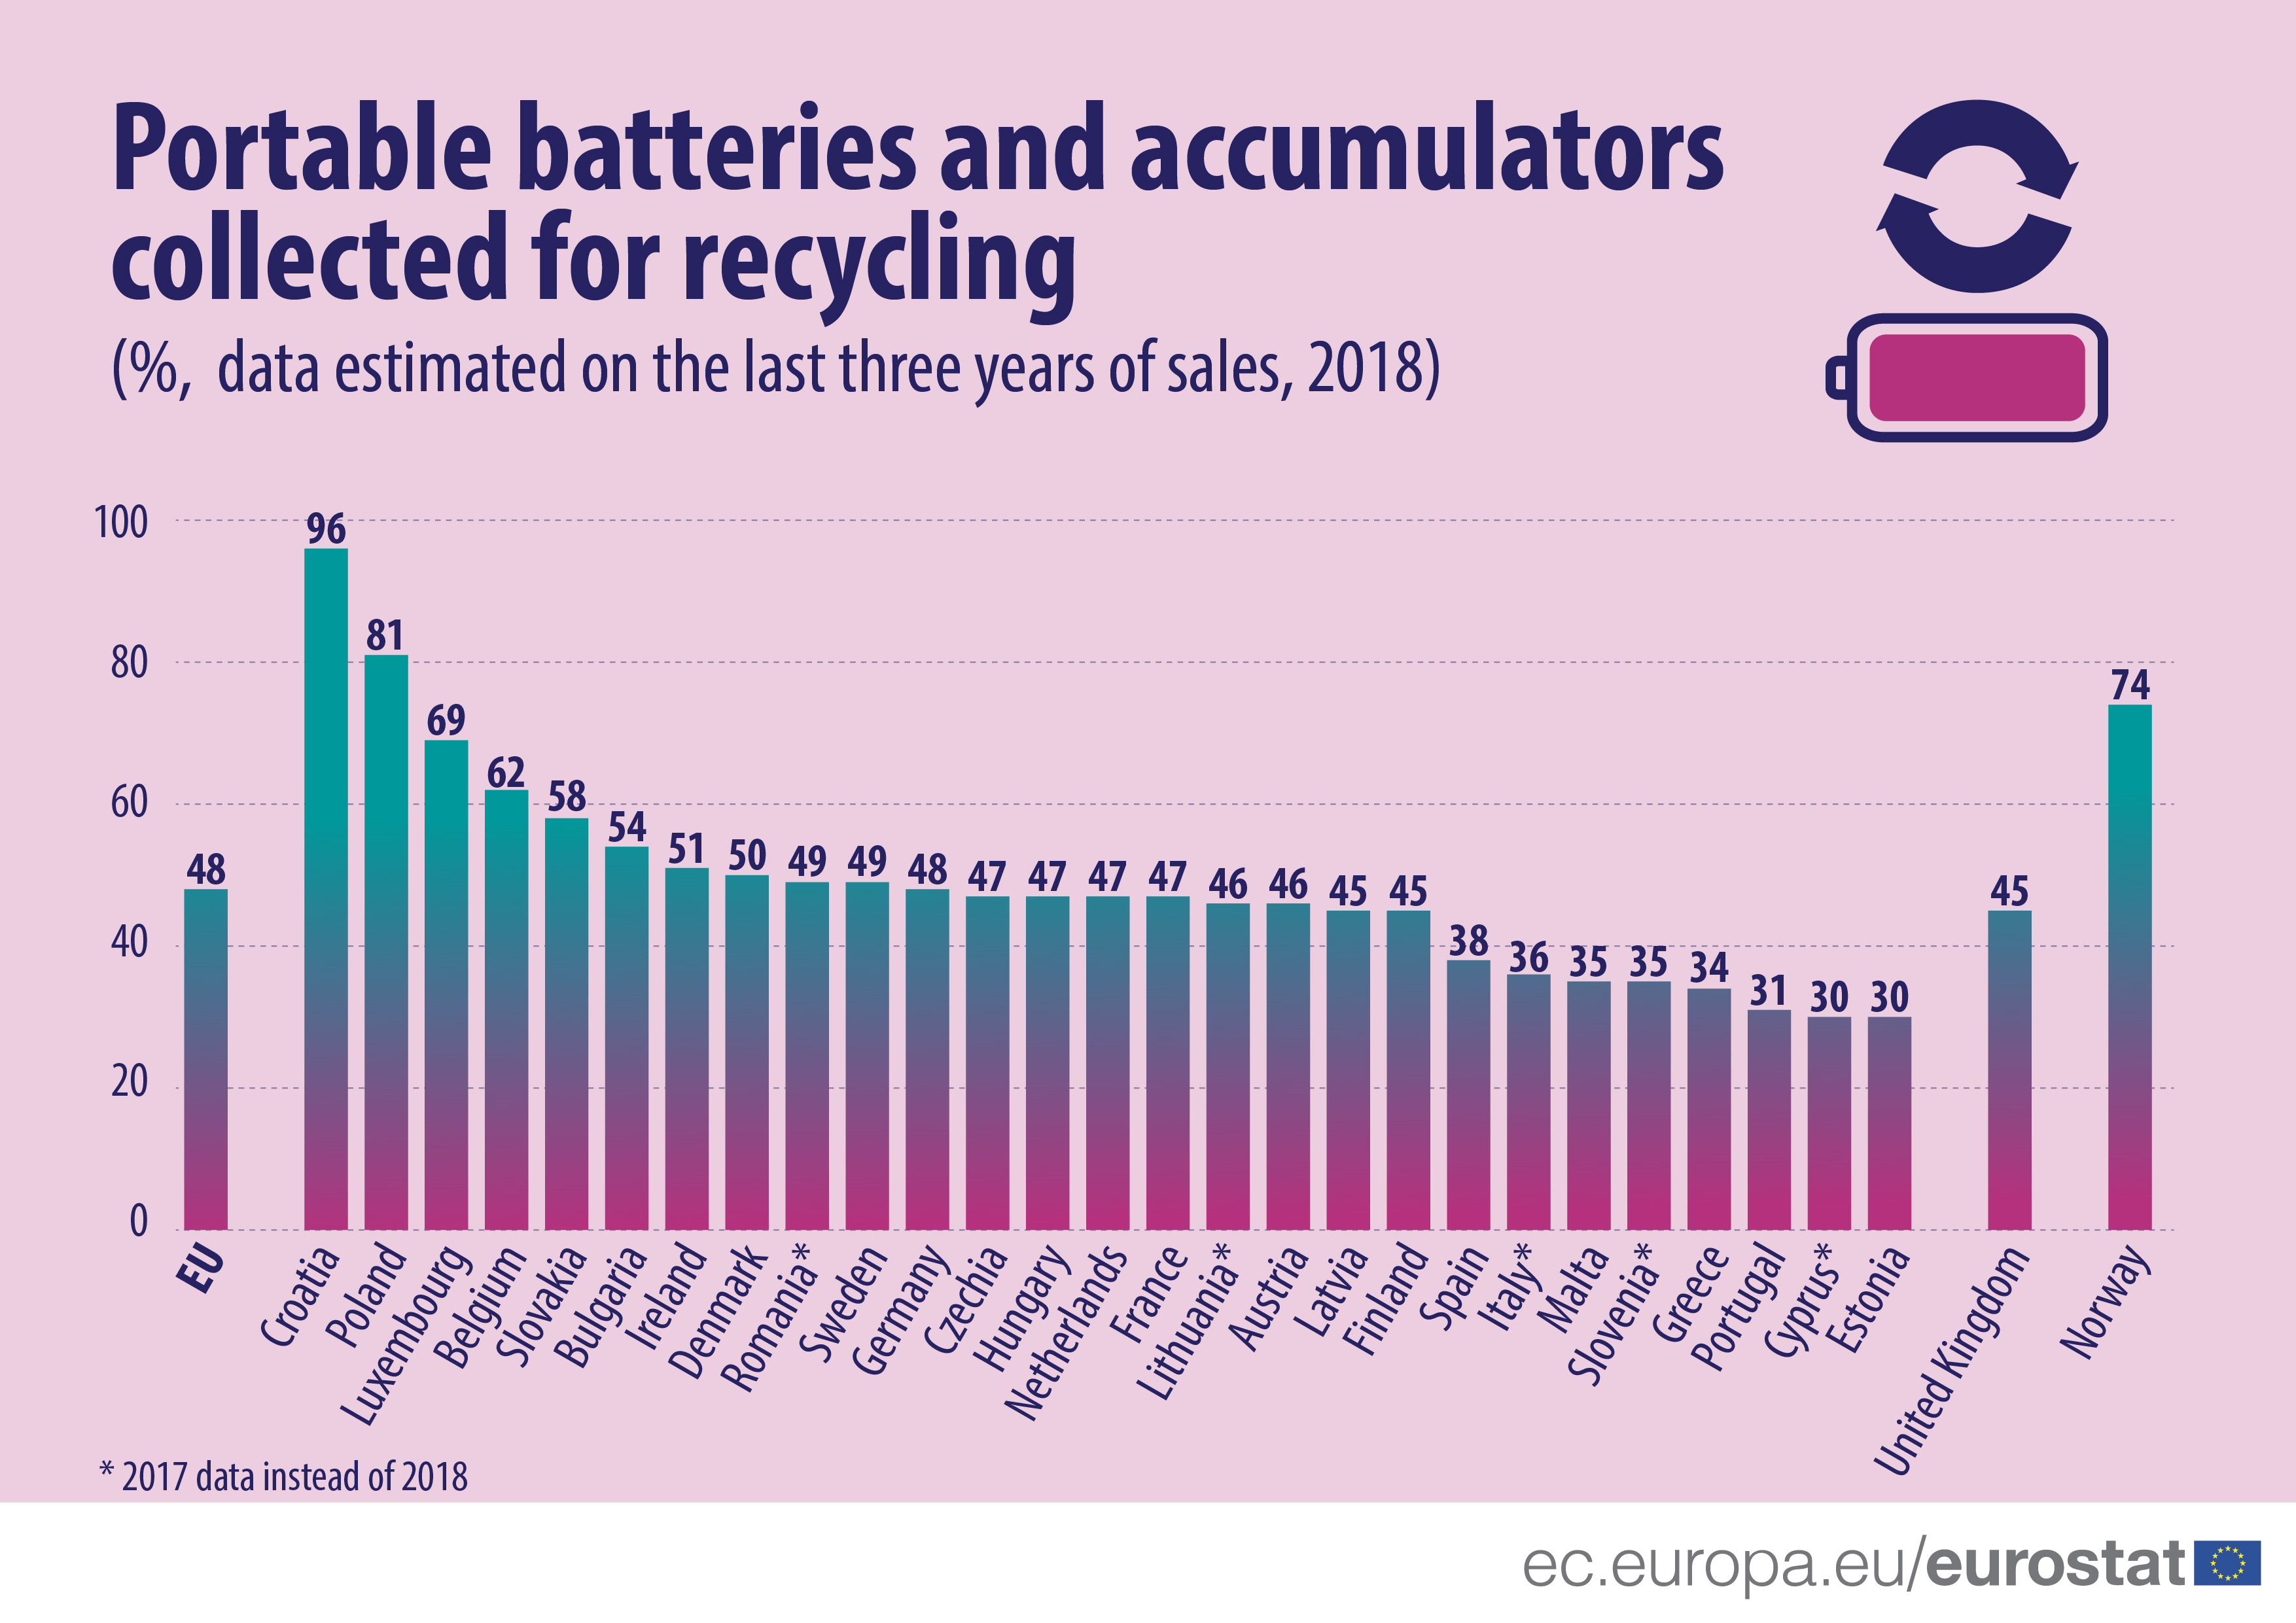 Portable batteries and accumulators collected for recycling (2018)